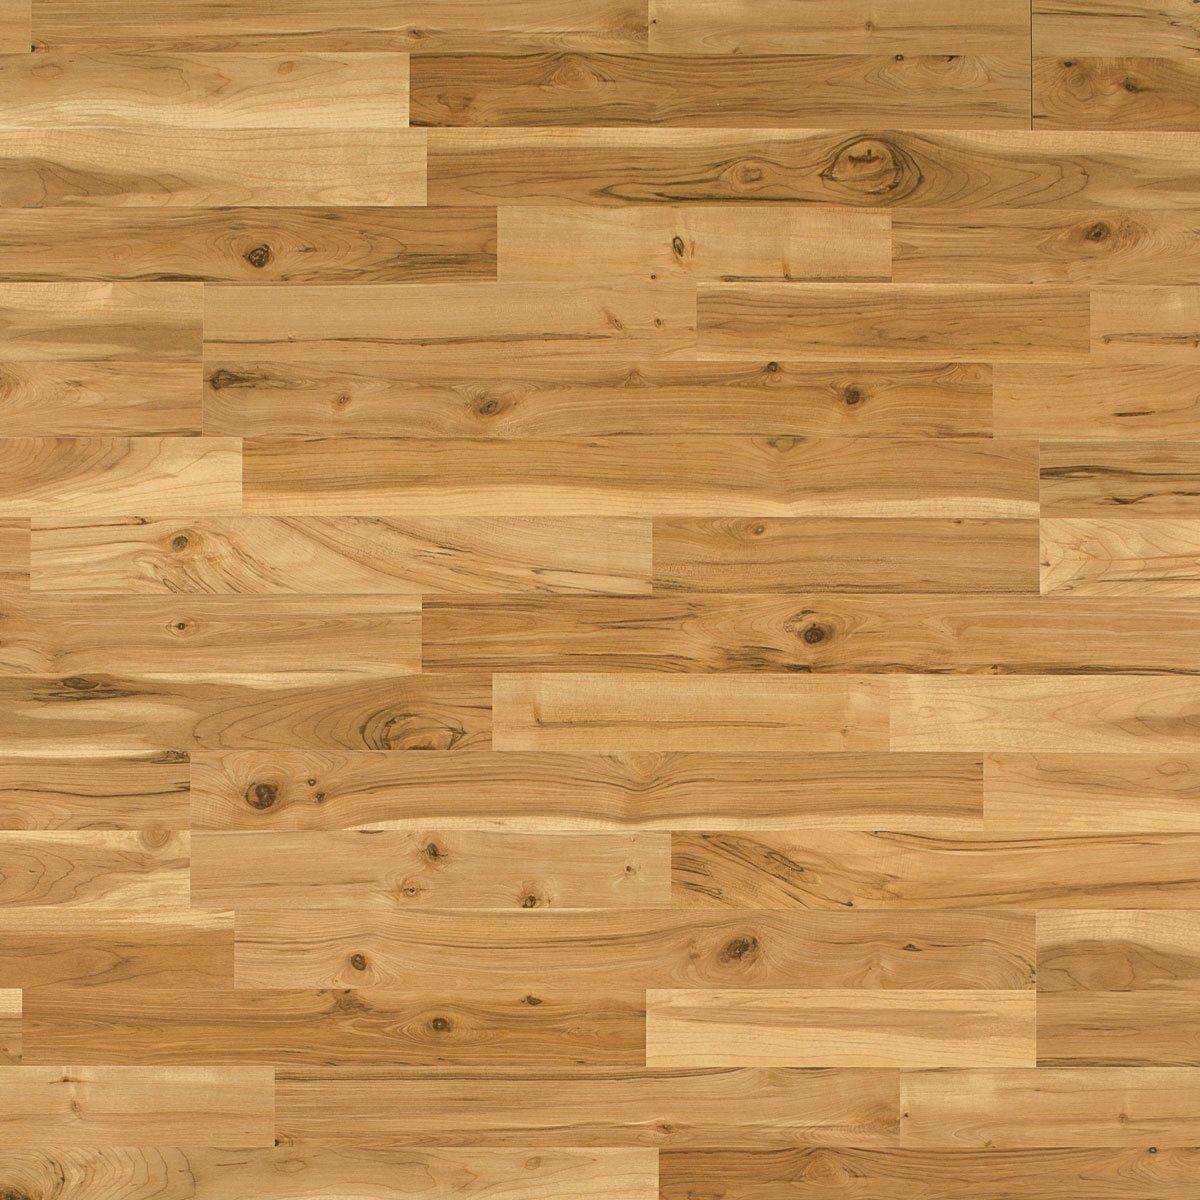 ELIGNA COLLECTION Caramelized Maple - 8mm Laminate Flooring by Quick-Step #woodfloortexture